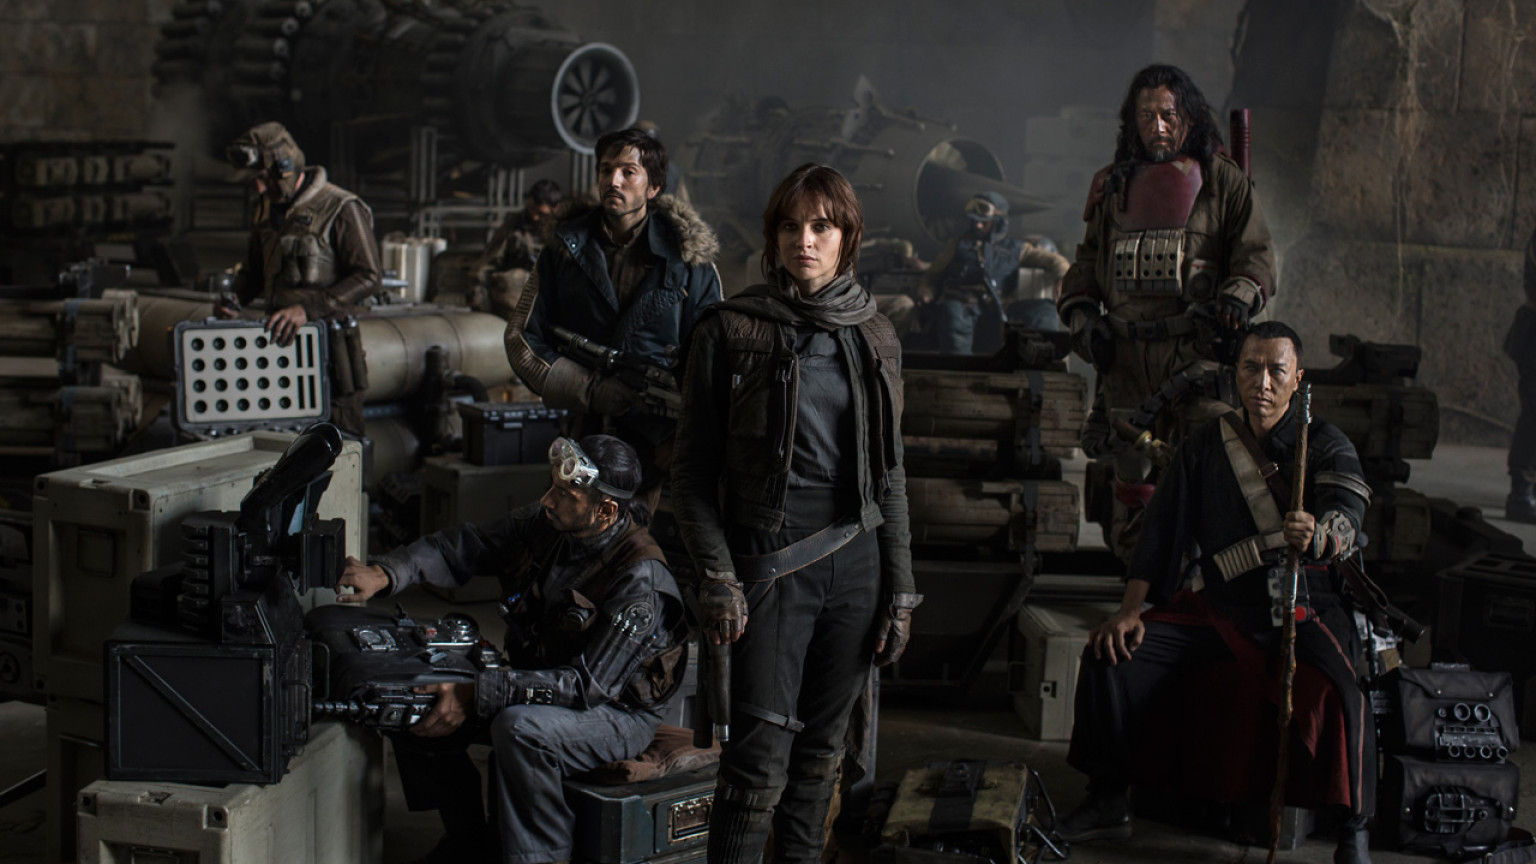 The cast of 'Rogue One: A Star Wars Story'